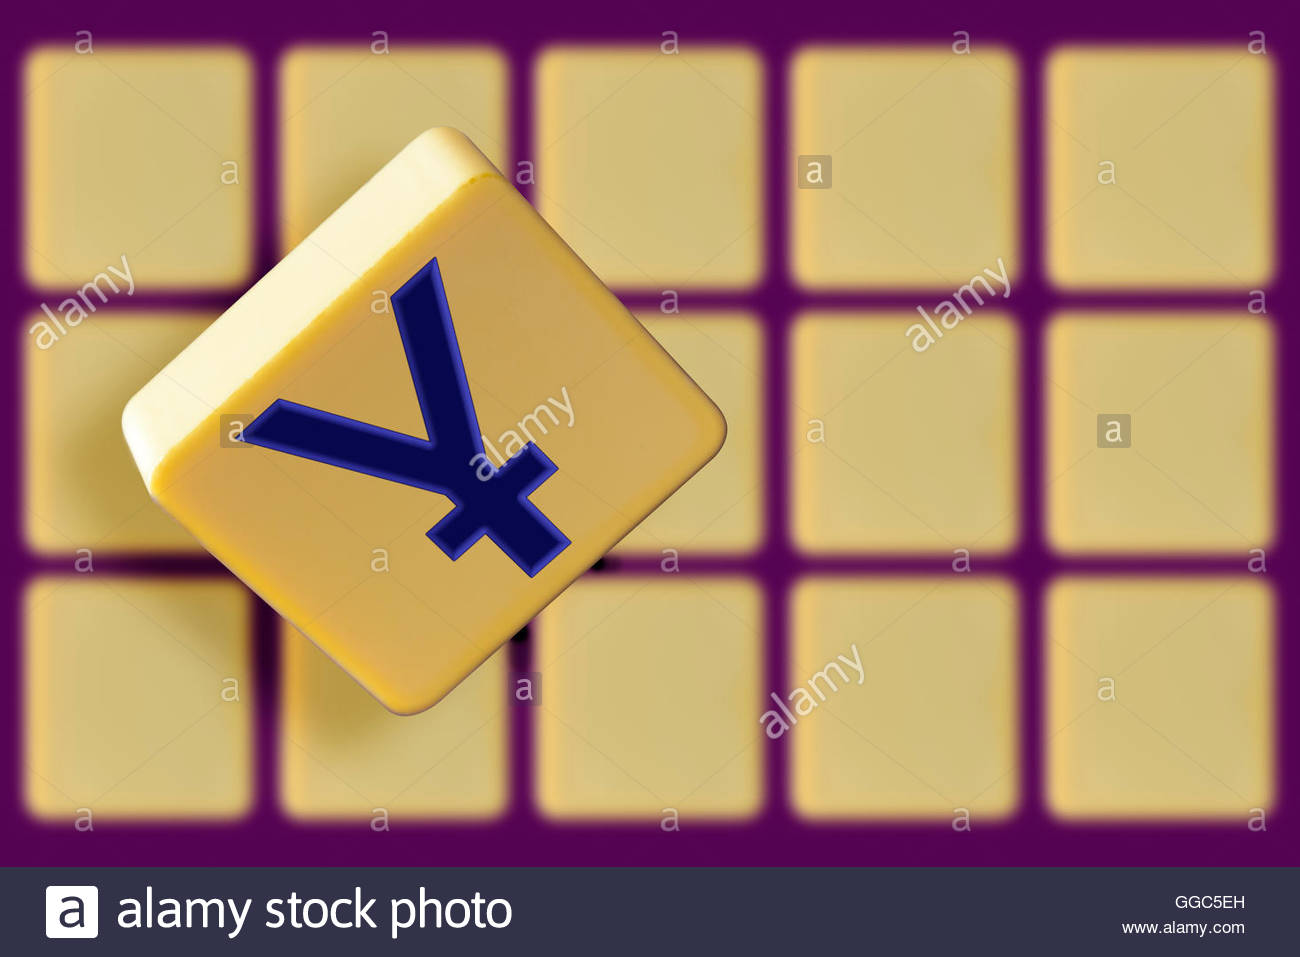 Currency Symbol For Yen And Yuan Alphabet Tile Dorset England